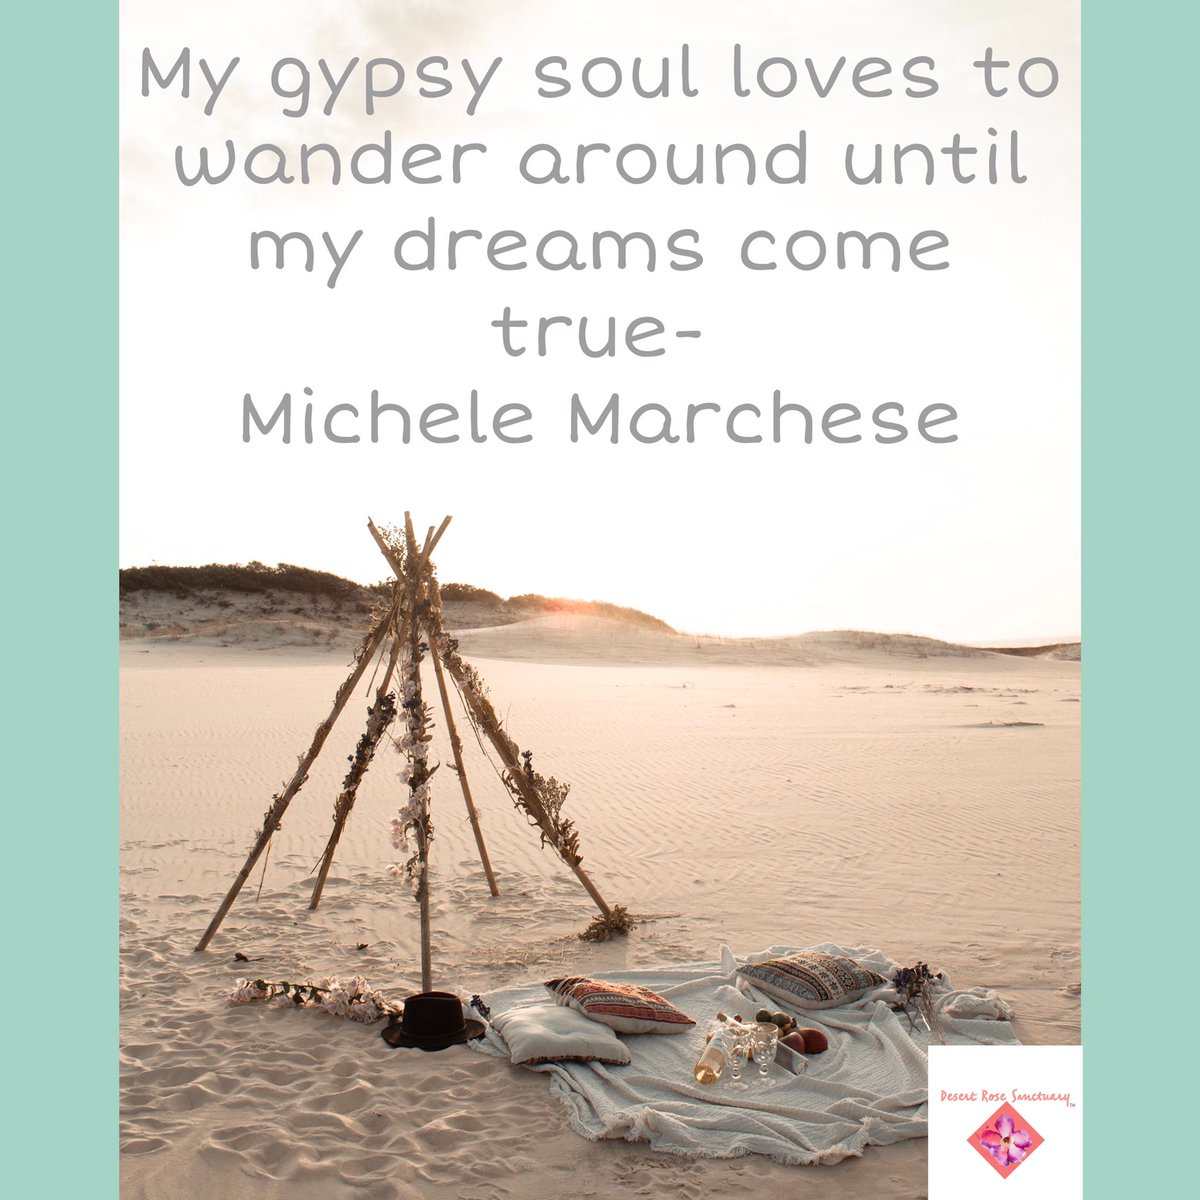 My gypsy soul loves to wander around until my dreams come true- Michele Marchese #MondayVibes #spiritualawakening #soultribe #BohemianGrove #dreams https://t.co/0bihGbyN5G